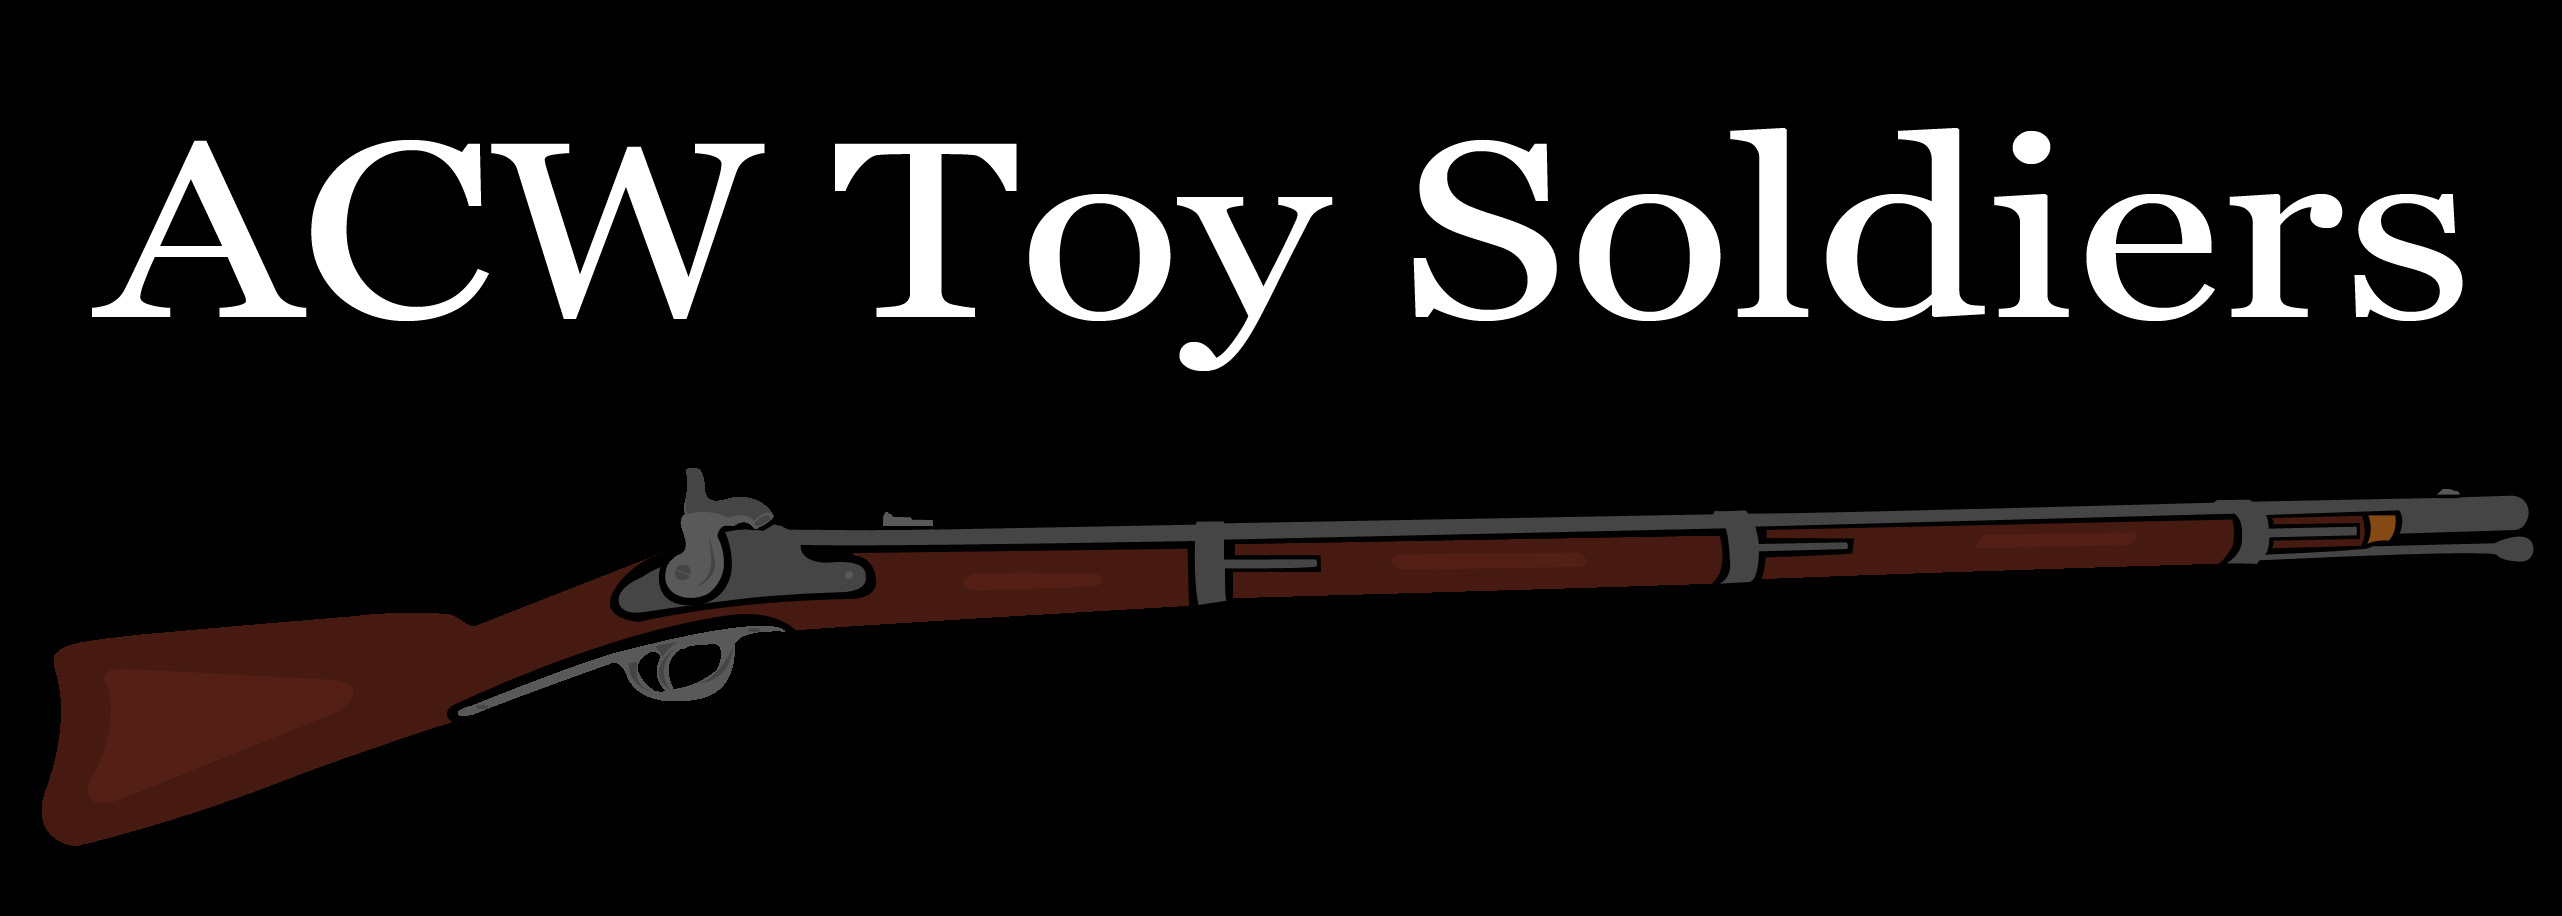 ACW Toy Soldiers logo